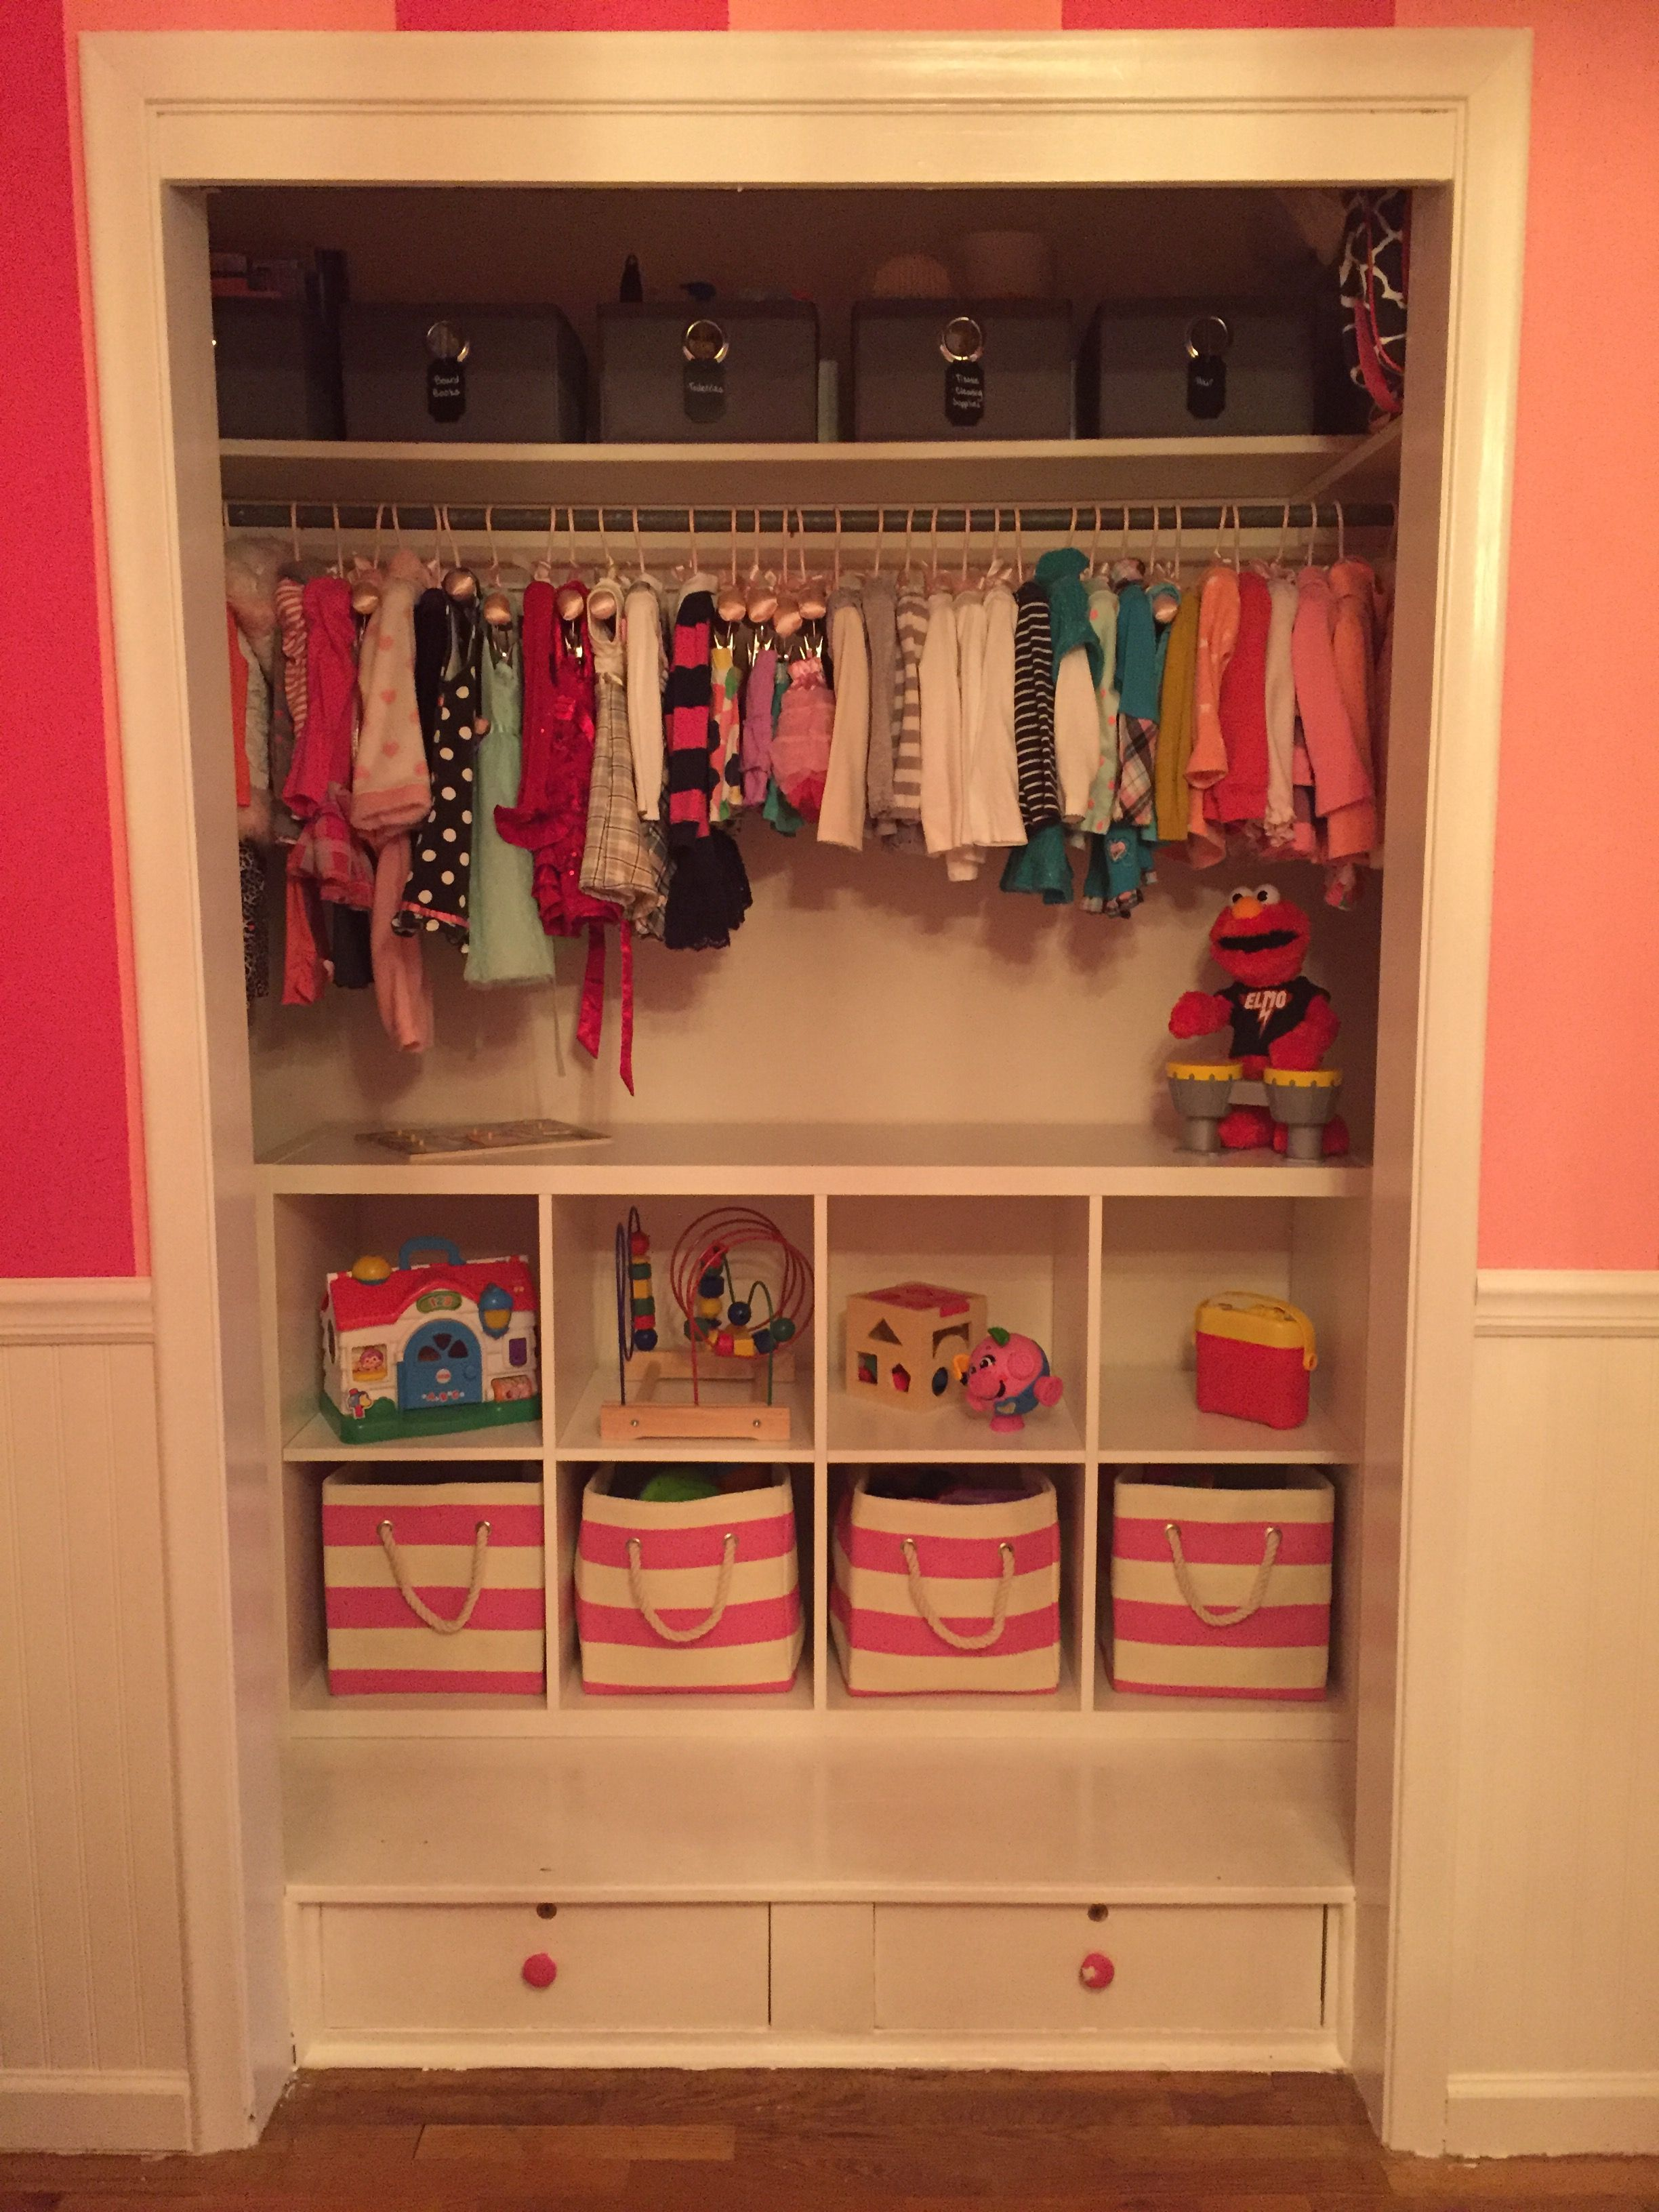 Amelia S Room Toddler Bedroom: Toddler Closet Organization. Ikea Shelving. Land Of Nod